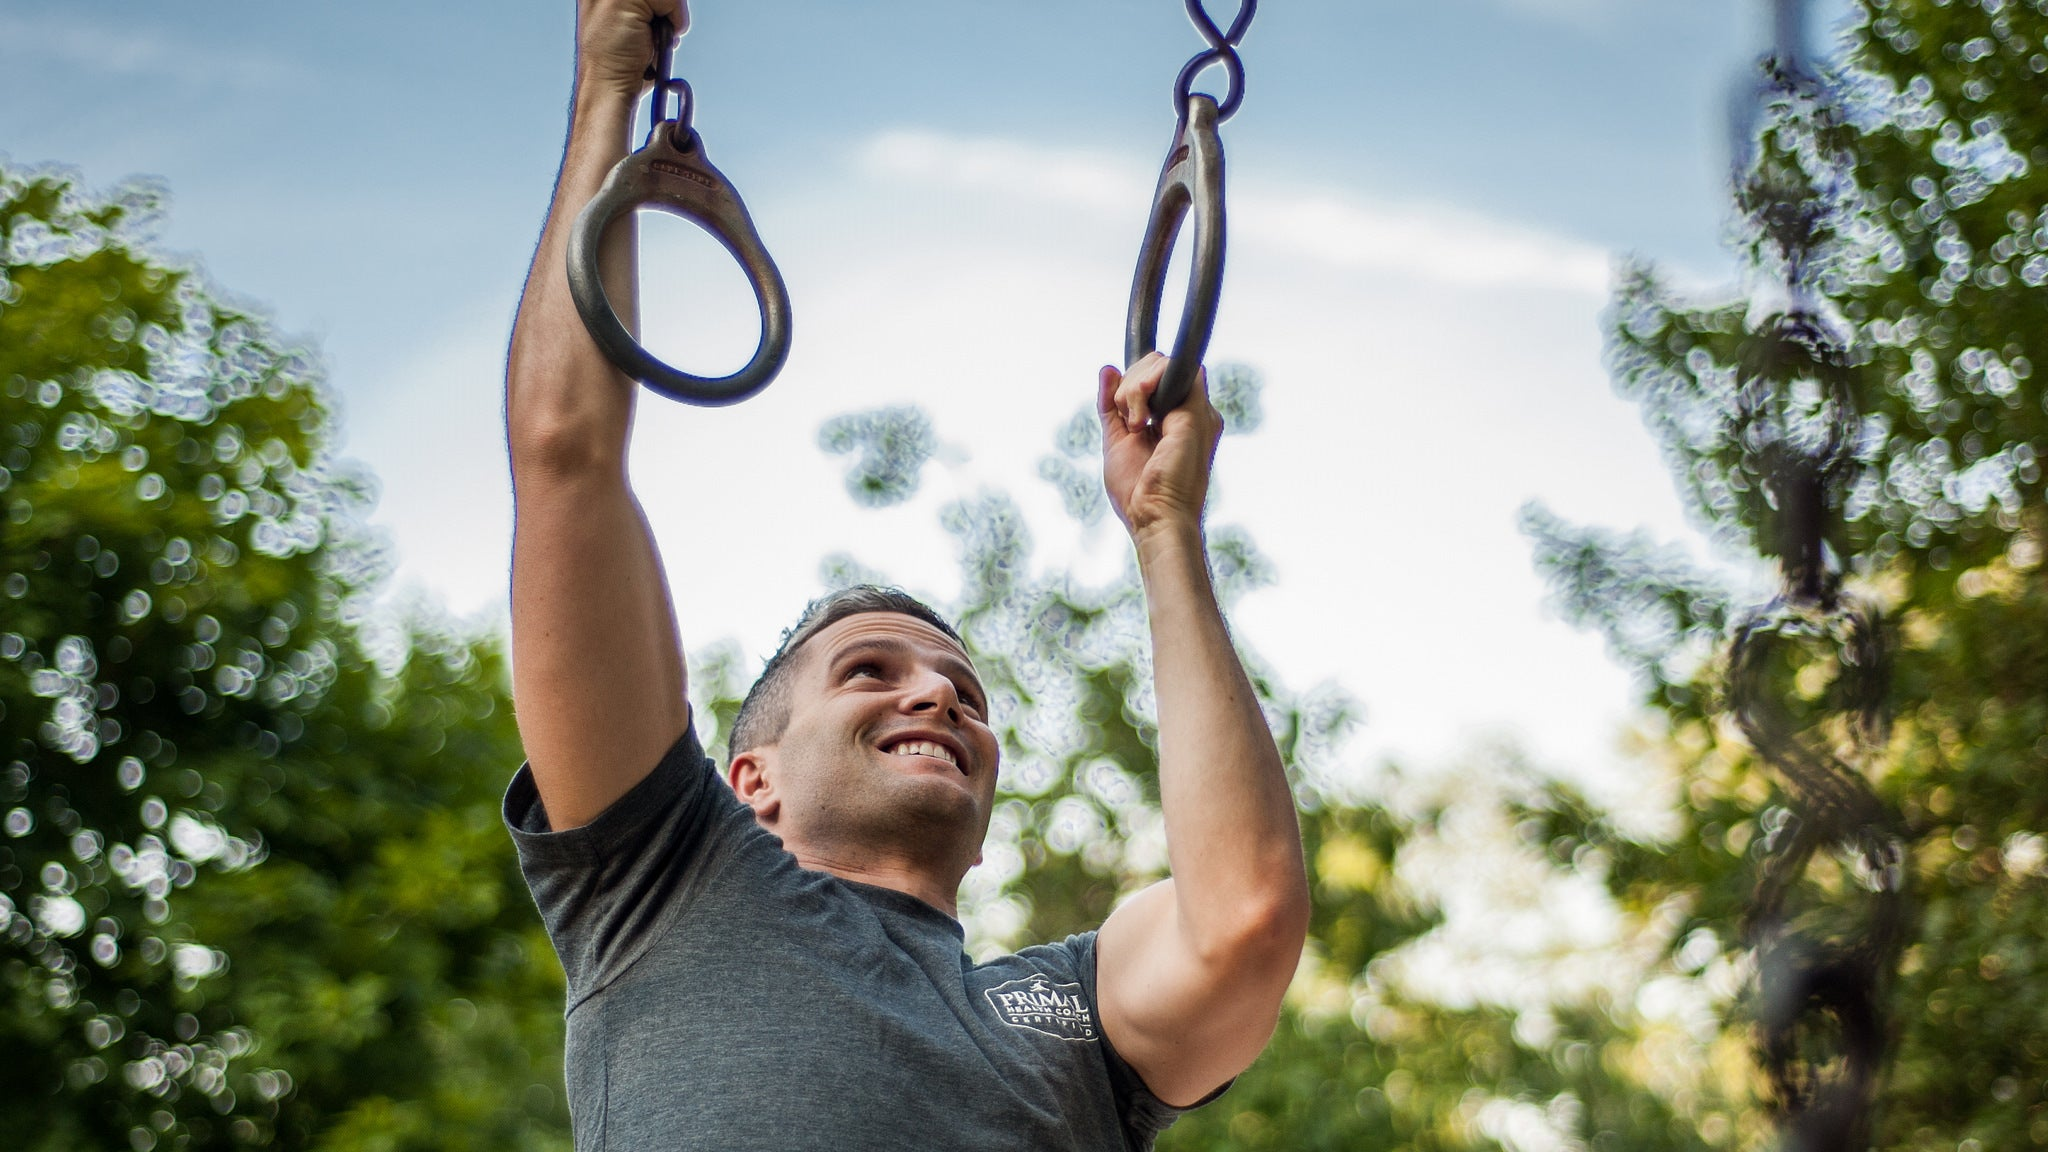 Make Fitness Trail Exercises Even More Challenging